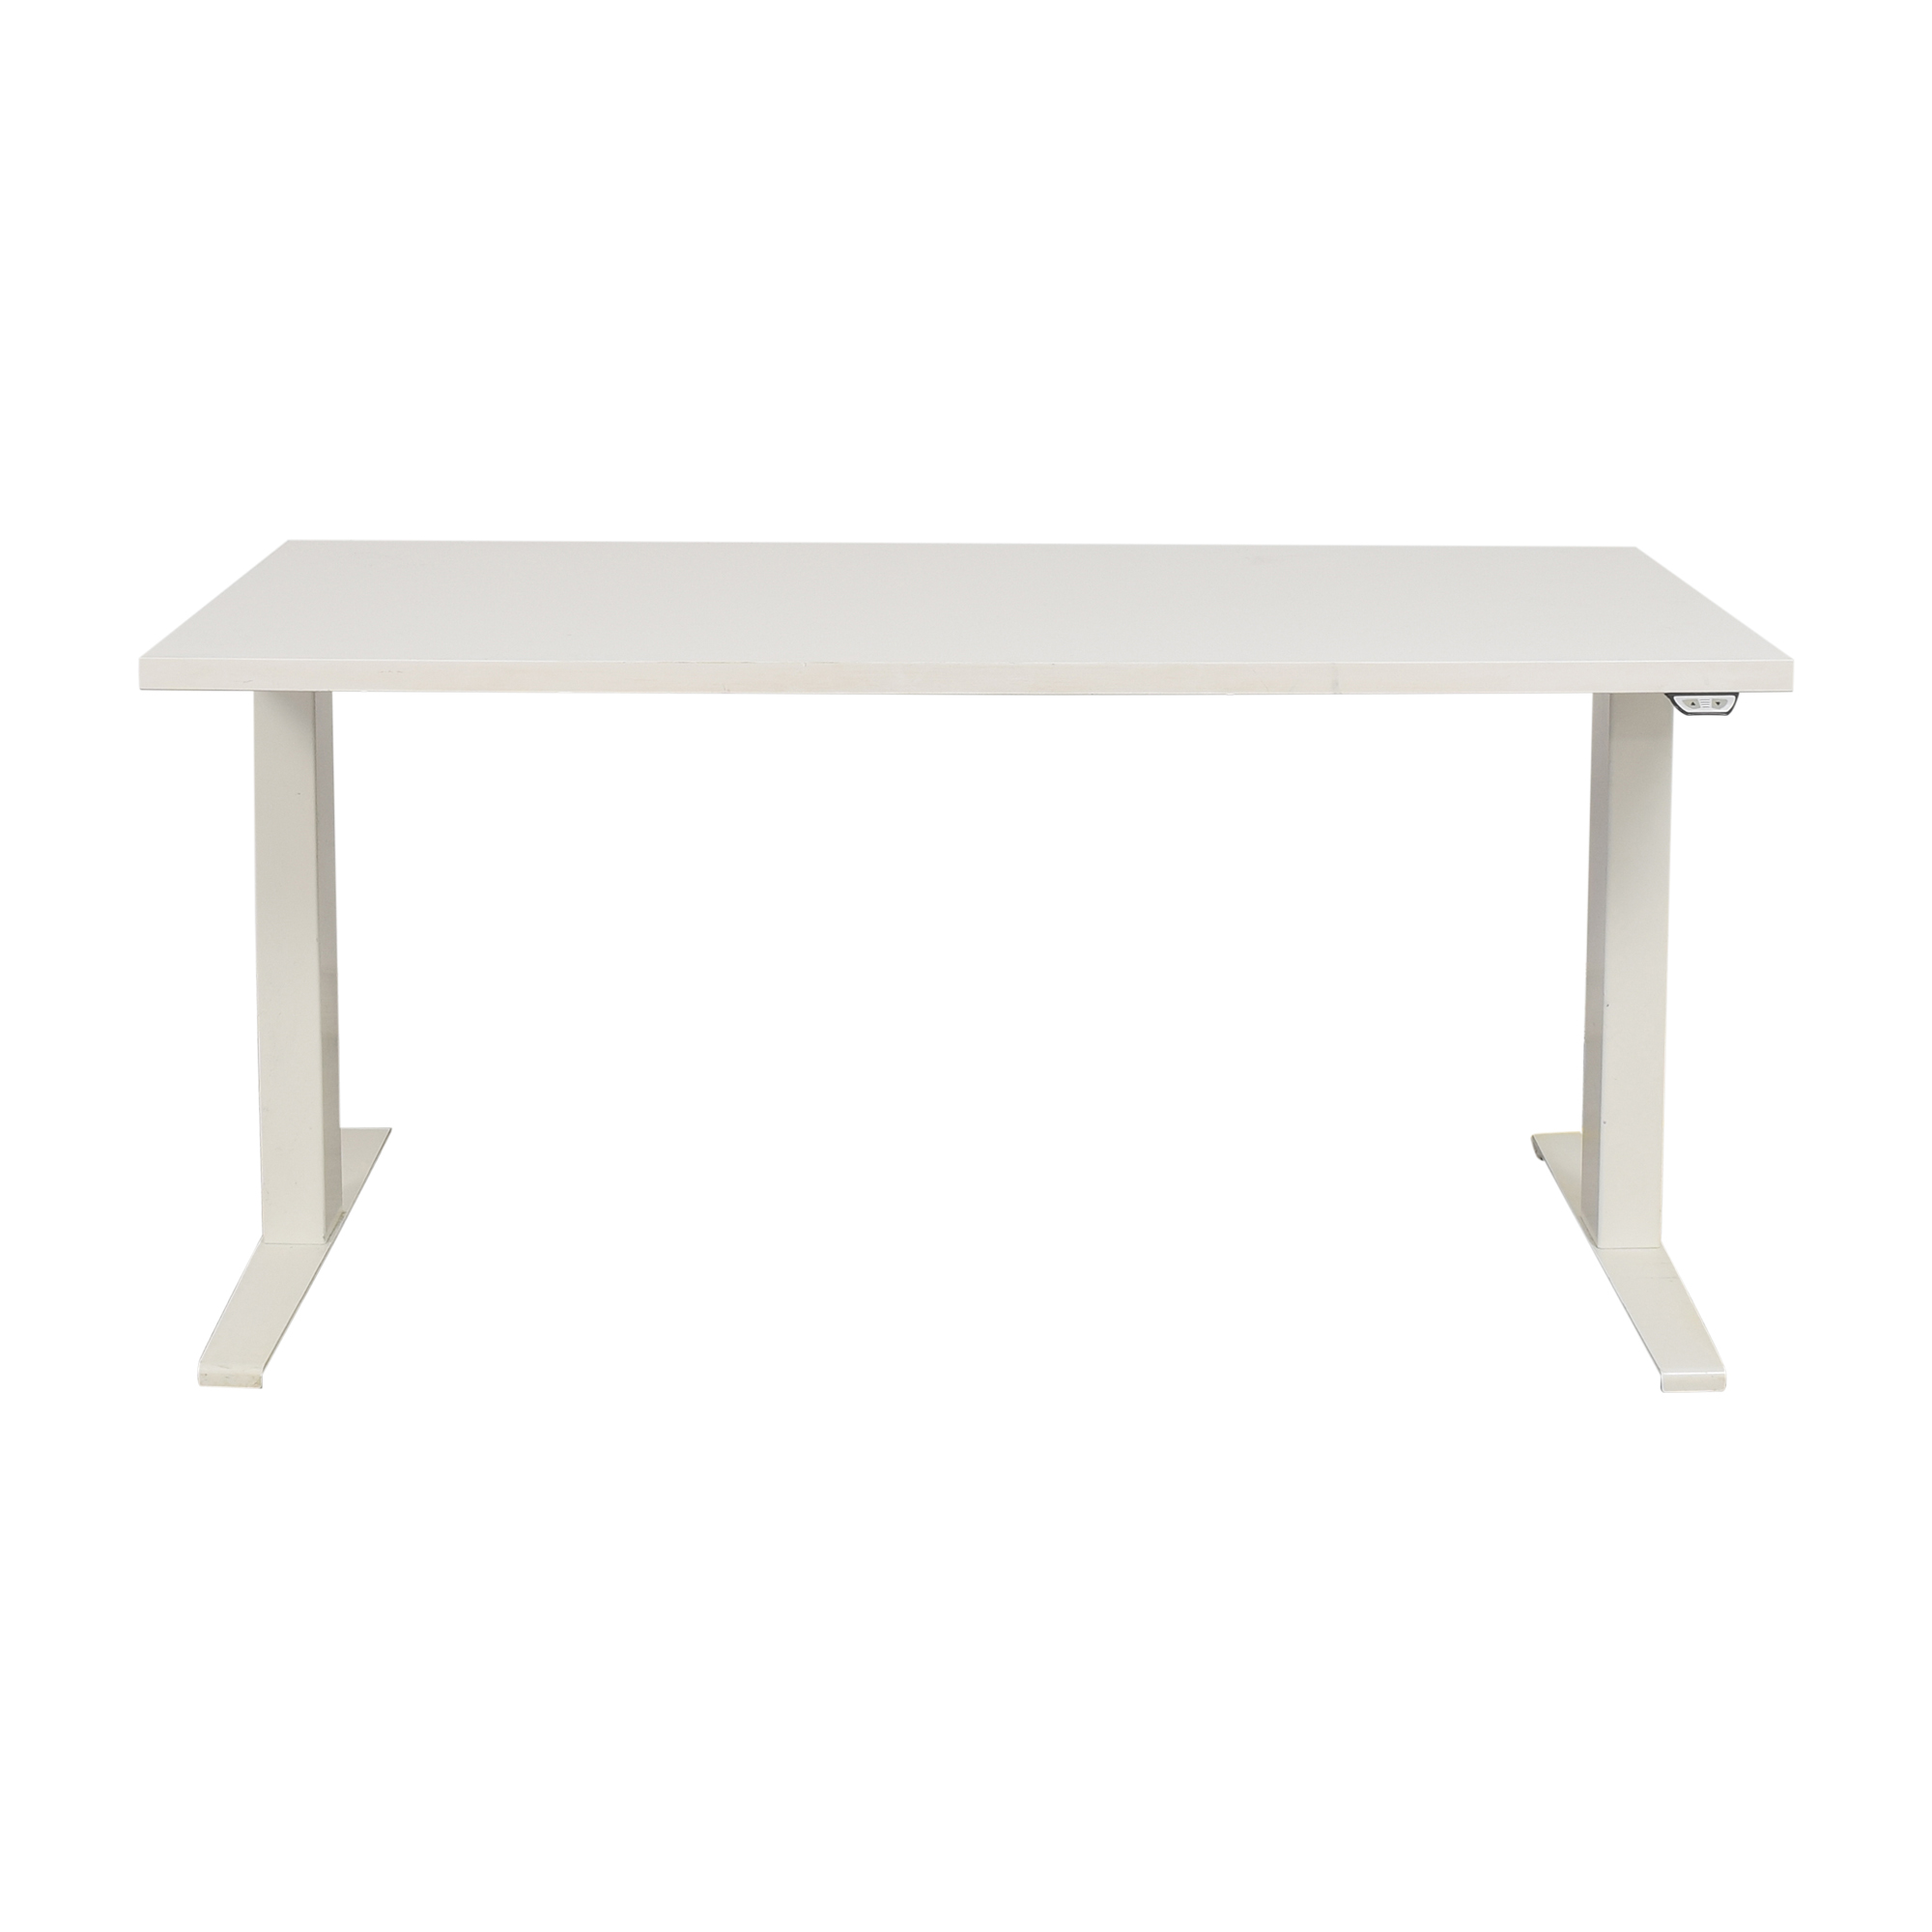 Herman Miller Motia Sit to Stand Desk / Tables